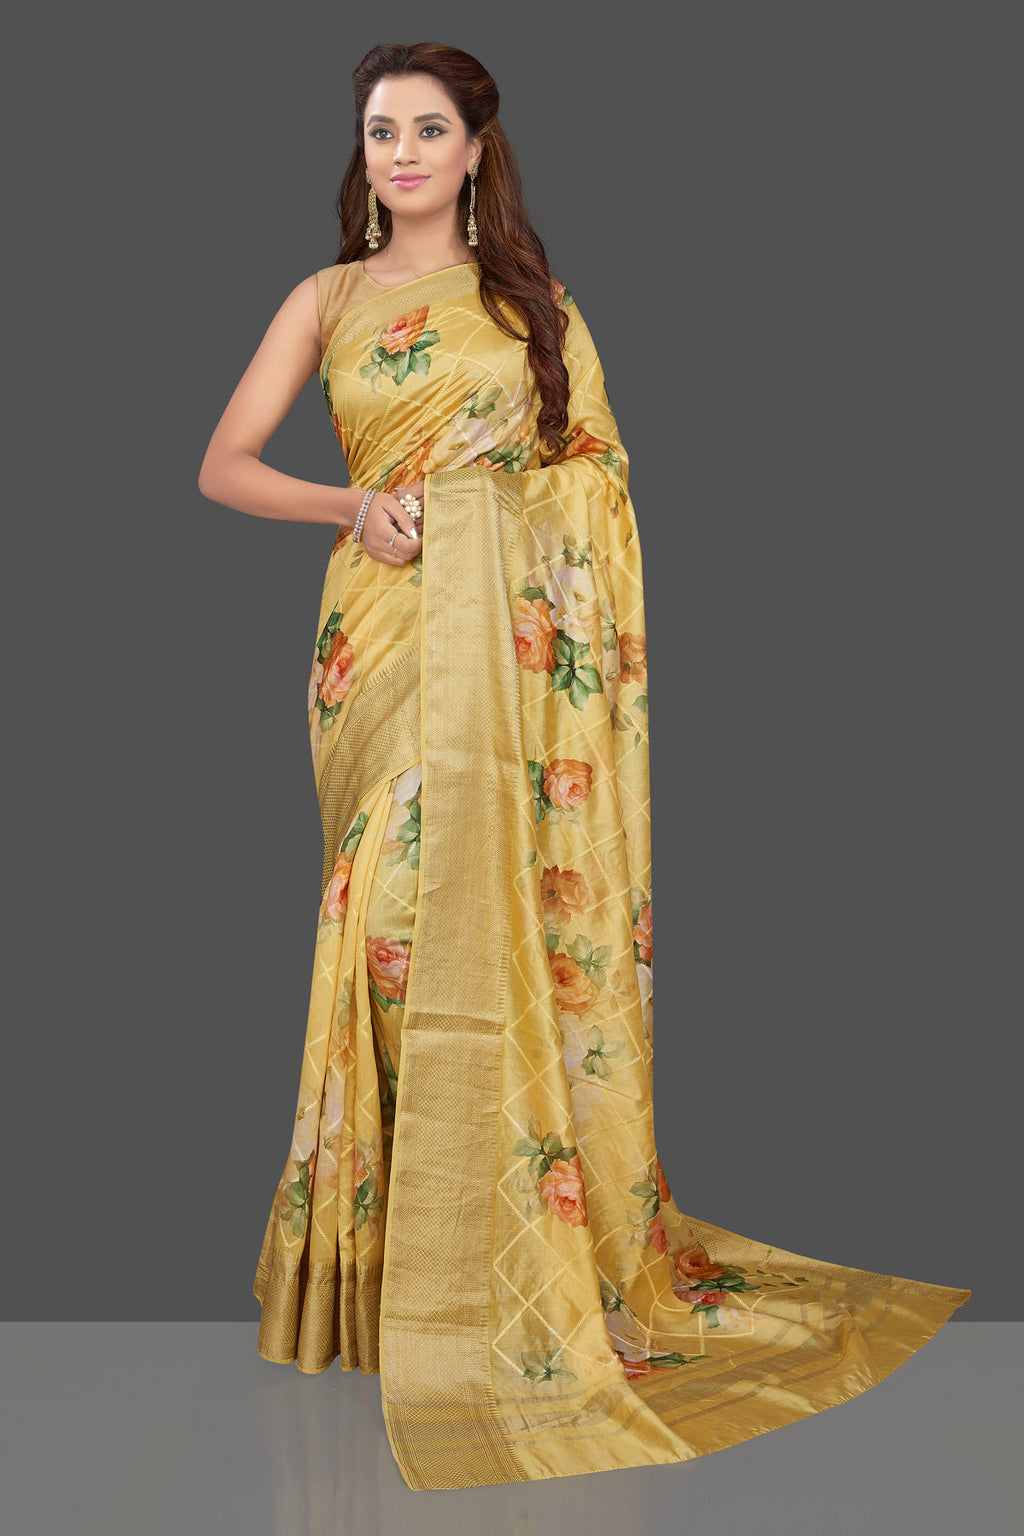 Buy beautiful yellow floral print muga silk saree online in USA with zari border. Make you presence felt with your Indian style on special occasions in beautiful designer sarees, handwoven sarees, muga sarees, tussar silk sarees from Pure Elegance Indian fashion store in USA.-full view